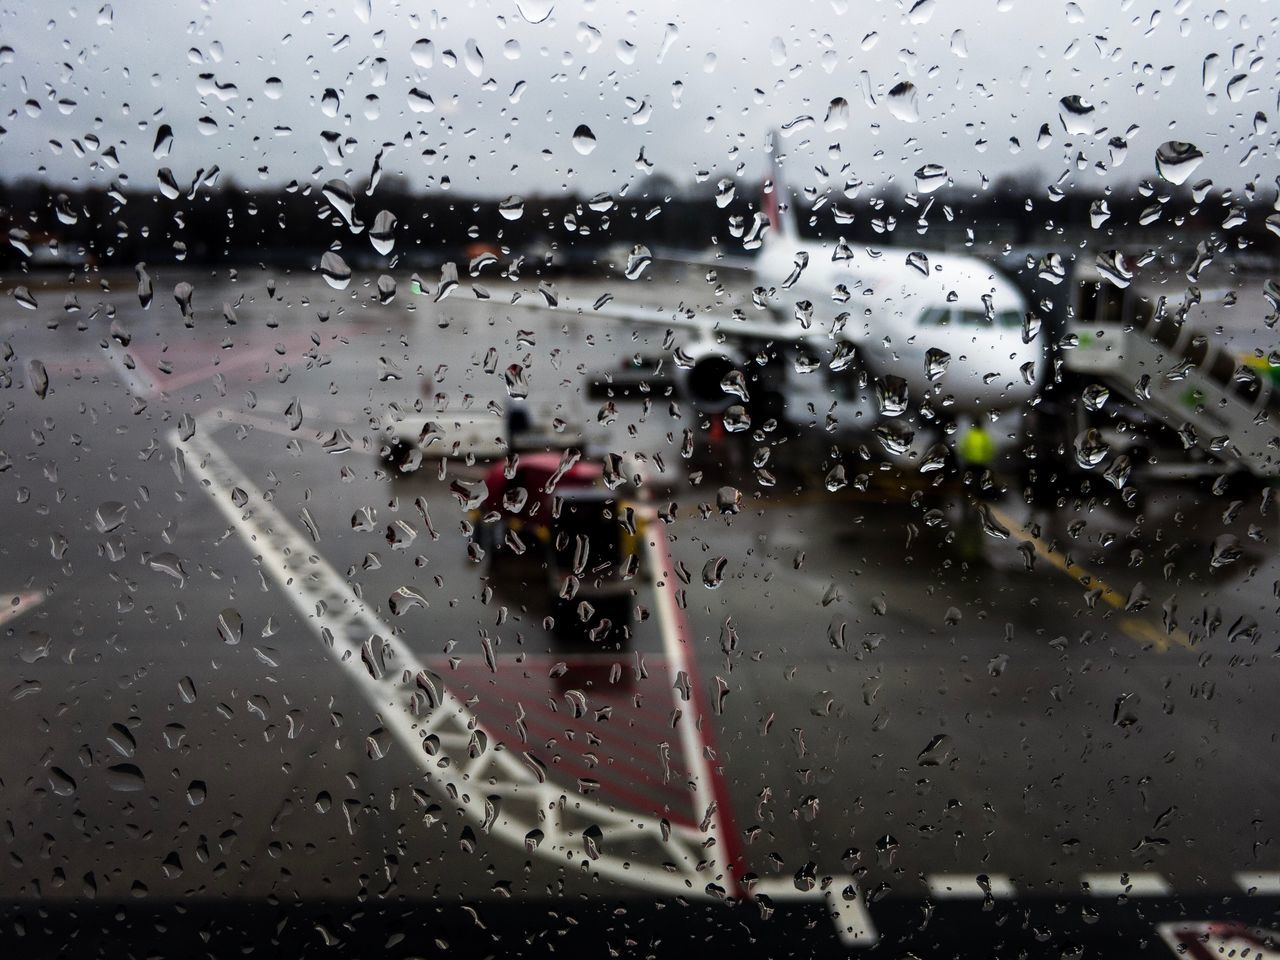 transportation, rain, wet, drop, window, travel, mode of transport, airplane, land vehicle, raindrop, no people, journey, road, day, runway, sky, outdoors, airport runway, air vehicle, water, close-up, nature, airplane wing